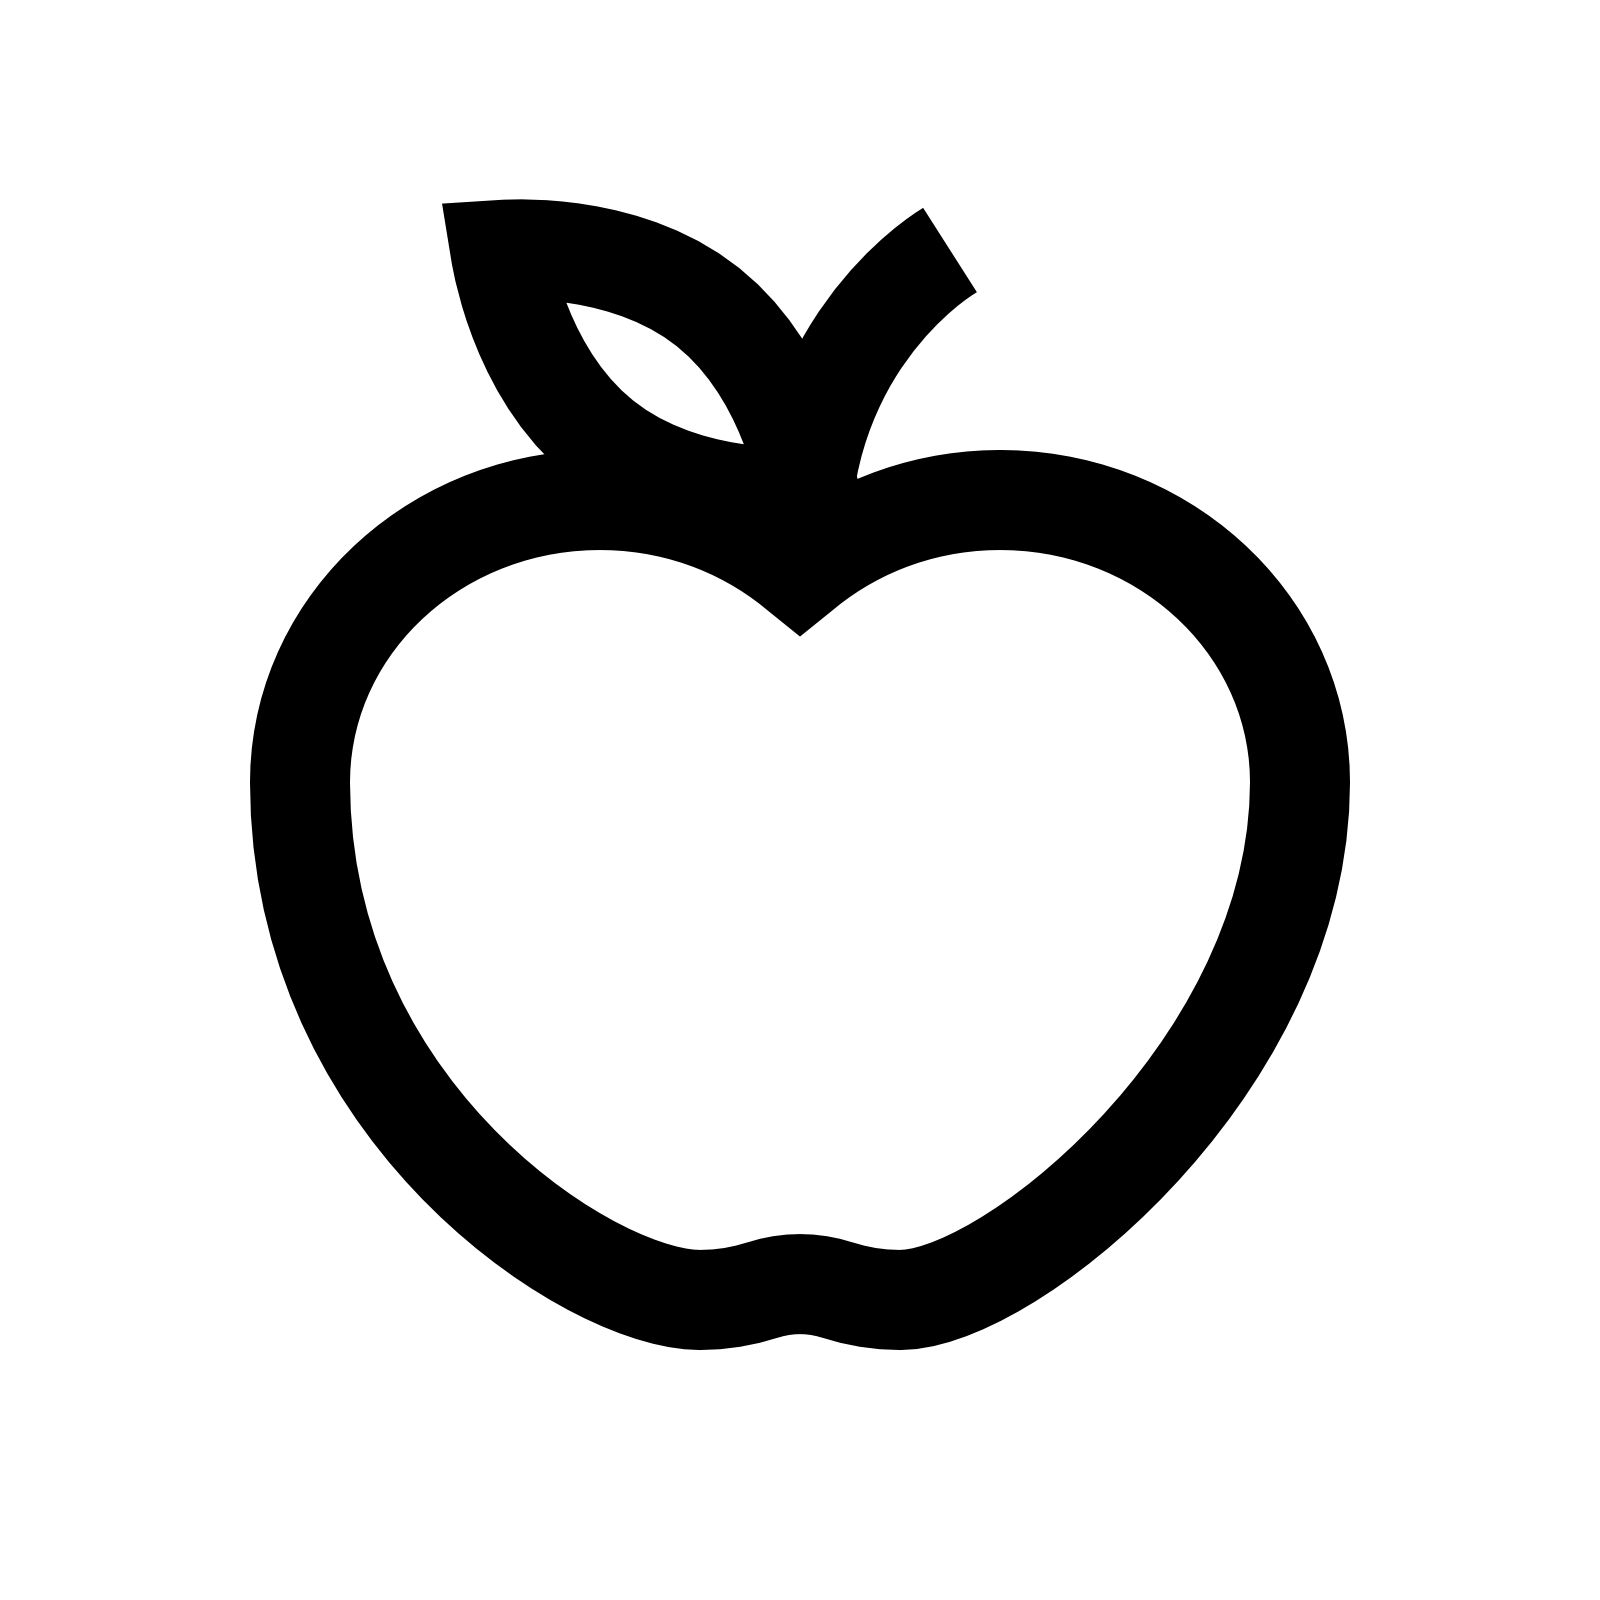 Apple Icon White 25481 Free Icons Lib 1134910 Png Images Pngio